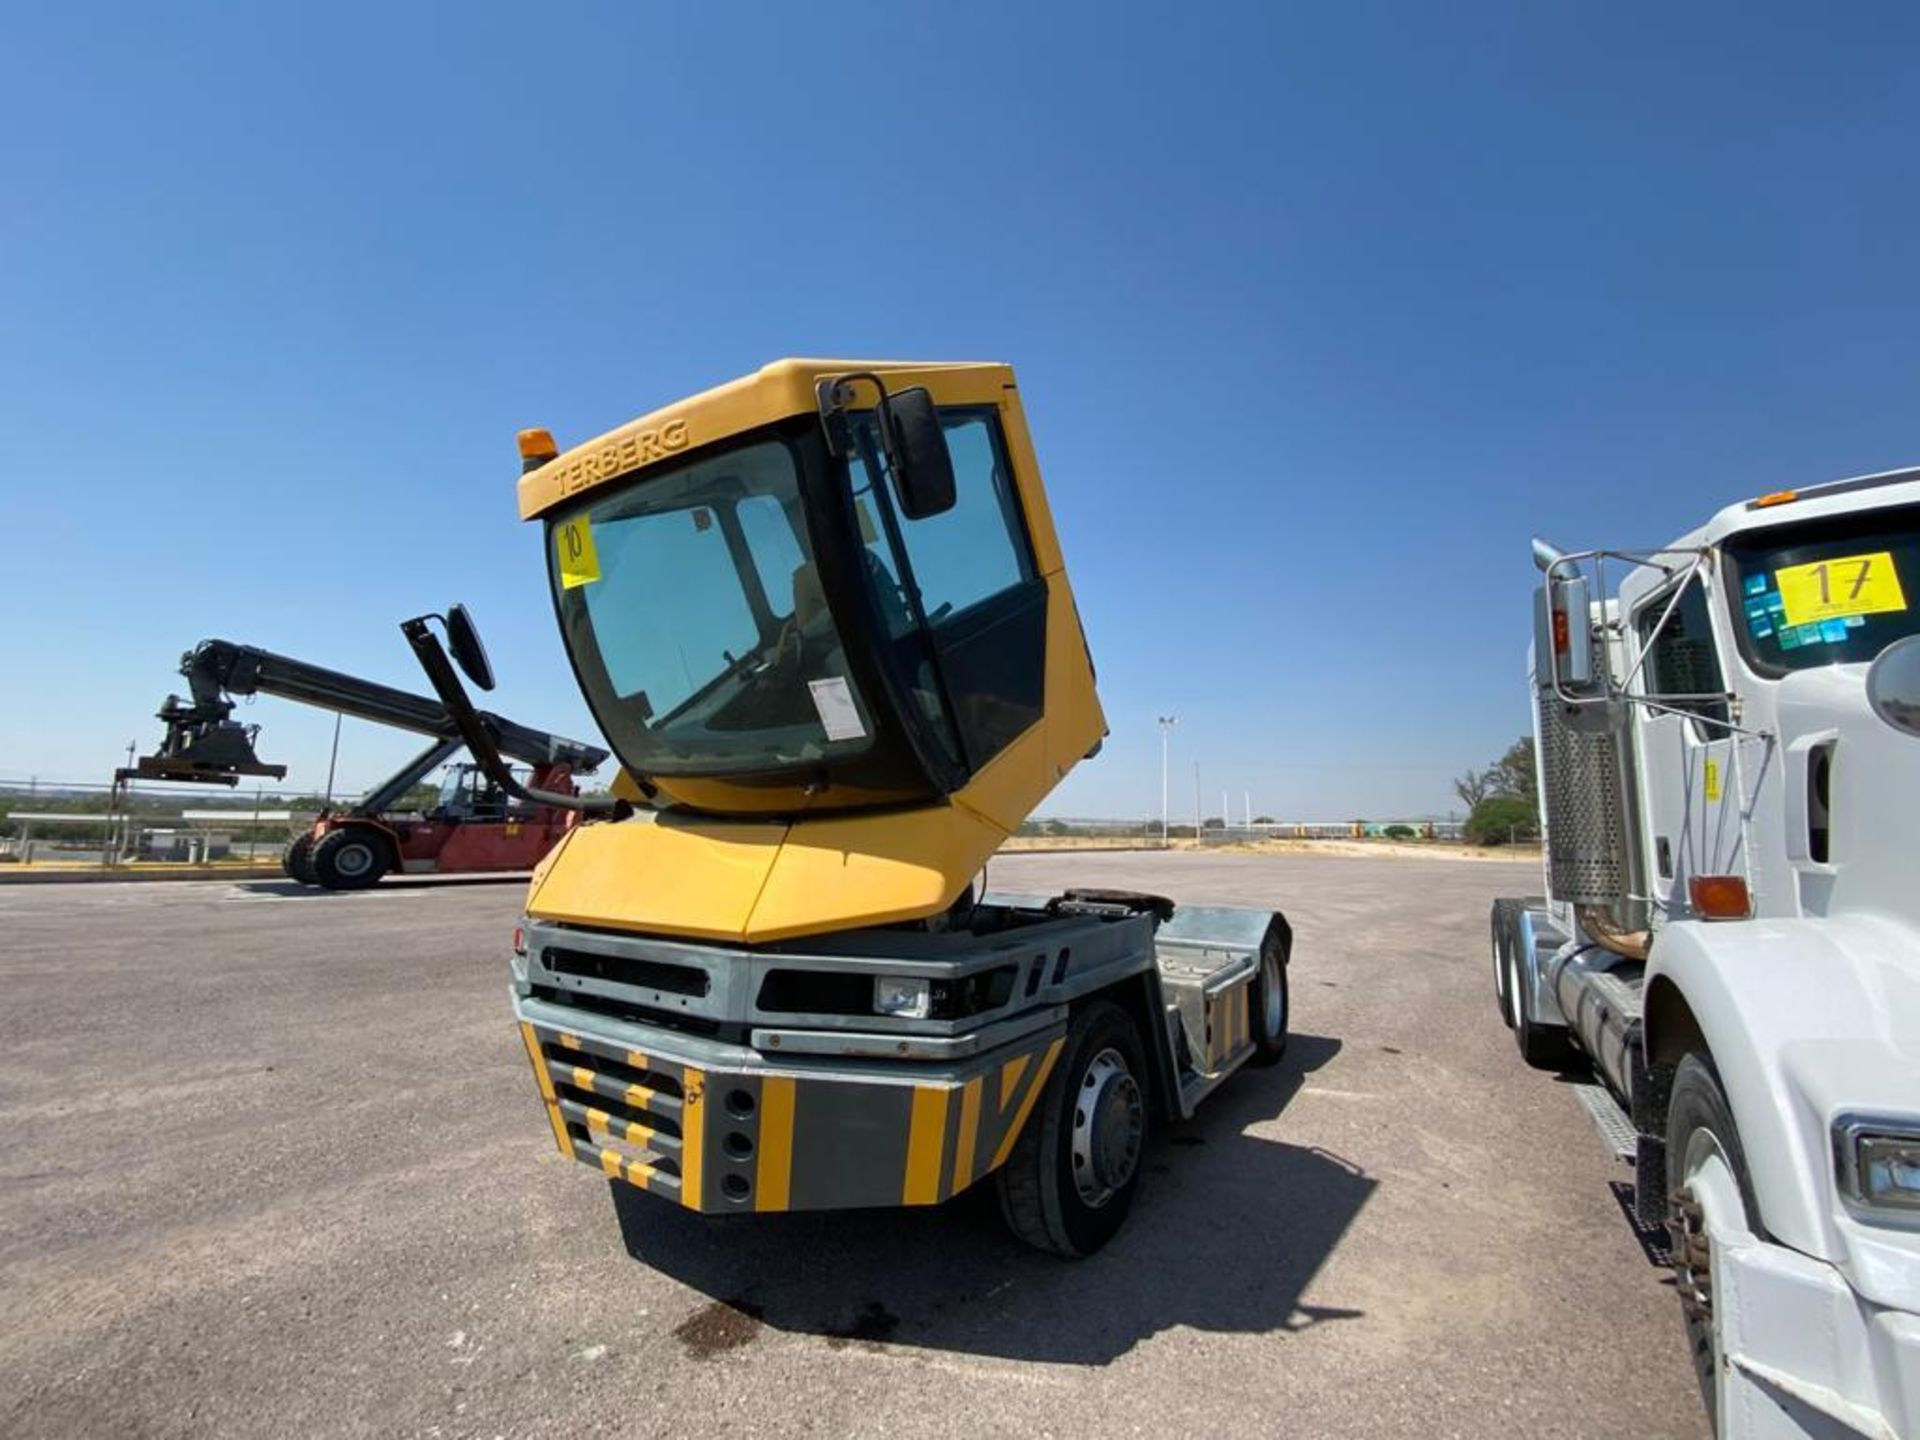 Terberg Capacity 2002 Terminal Tractor, automatic transmission, with Volvo motor - Image 8 of 28